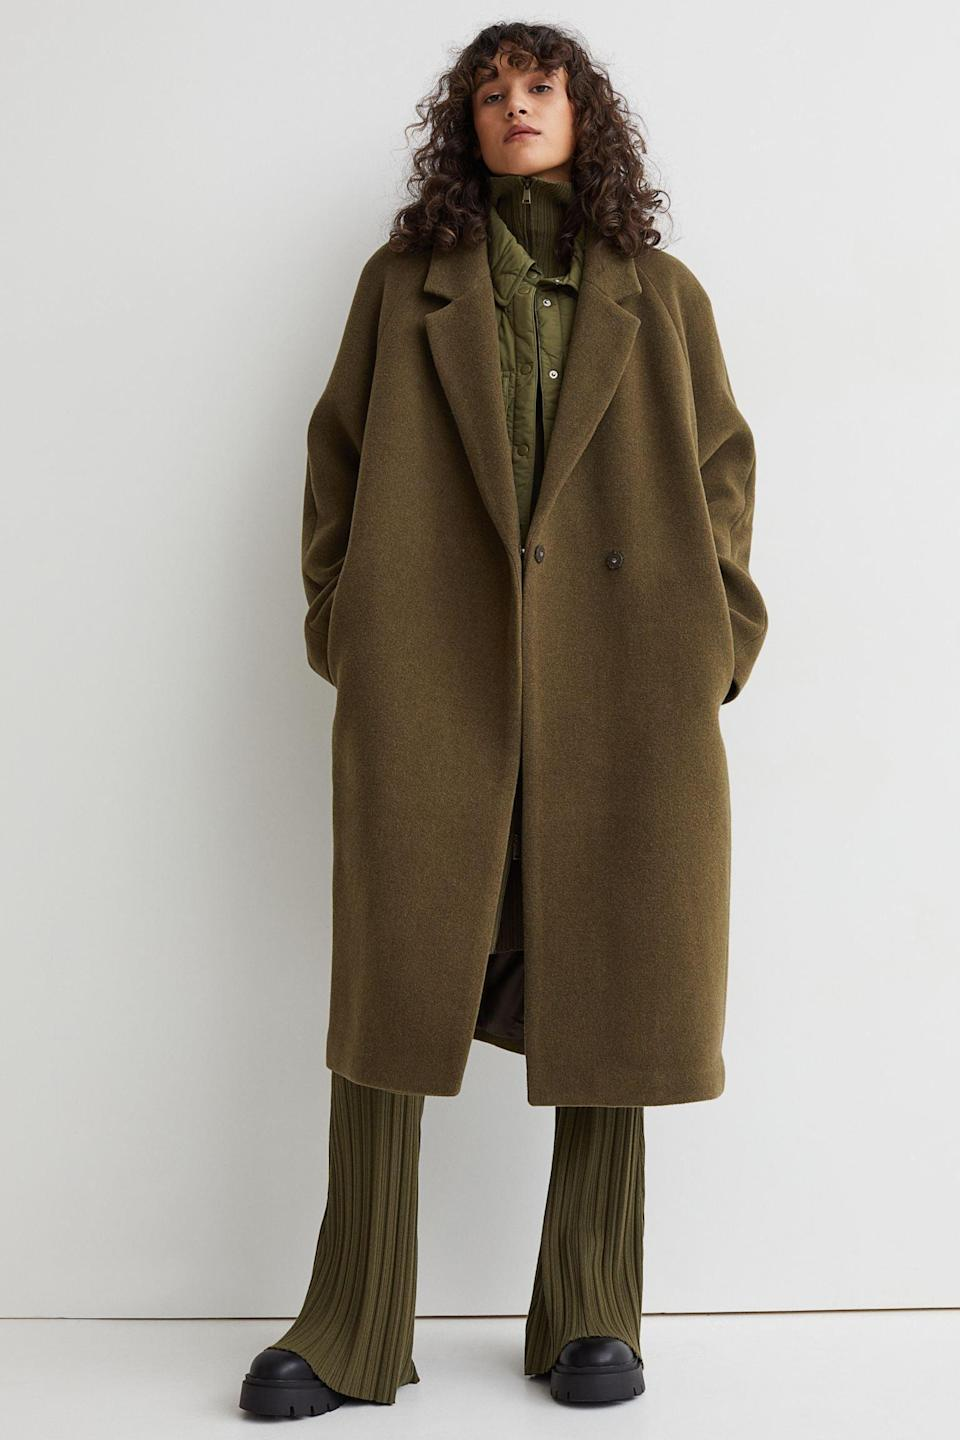 <p>This <span>Wool-blend Coat</span> ($159, originally $180) has enduring appeal, thanks to its straightforward silhouette, easy-to-wear style, and versatile color. Throw it over any look to add more flair.</p>